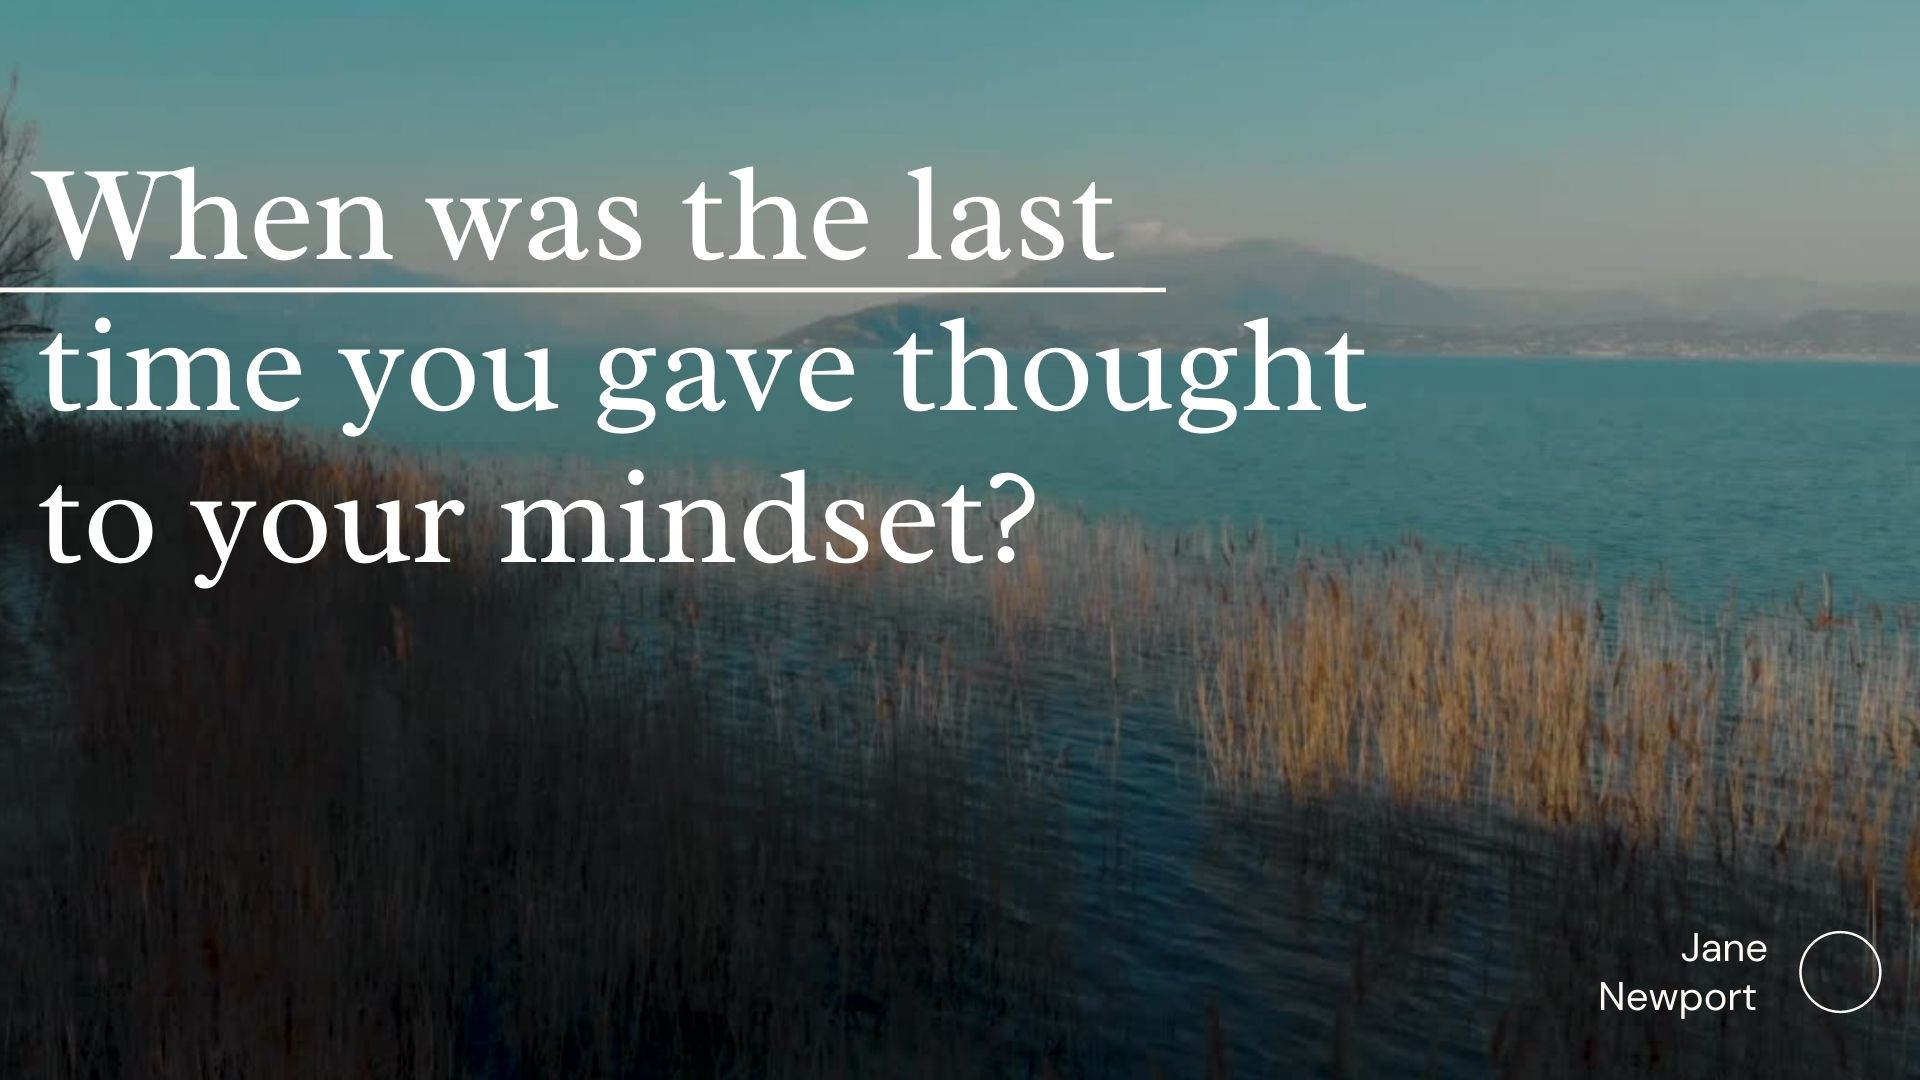 When Was The Last Time You Gave Thought To Your Mindset?